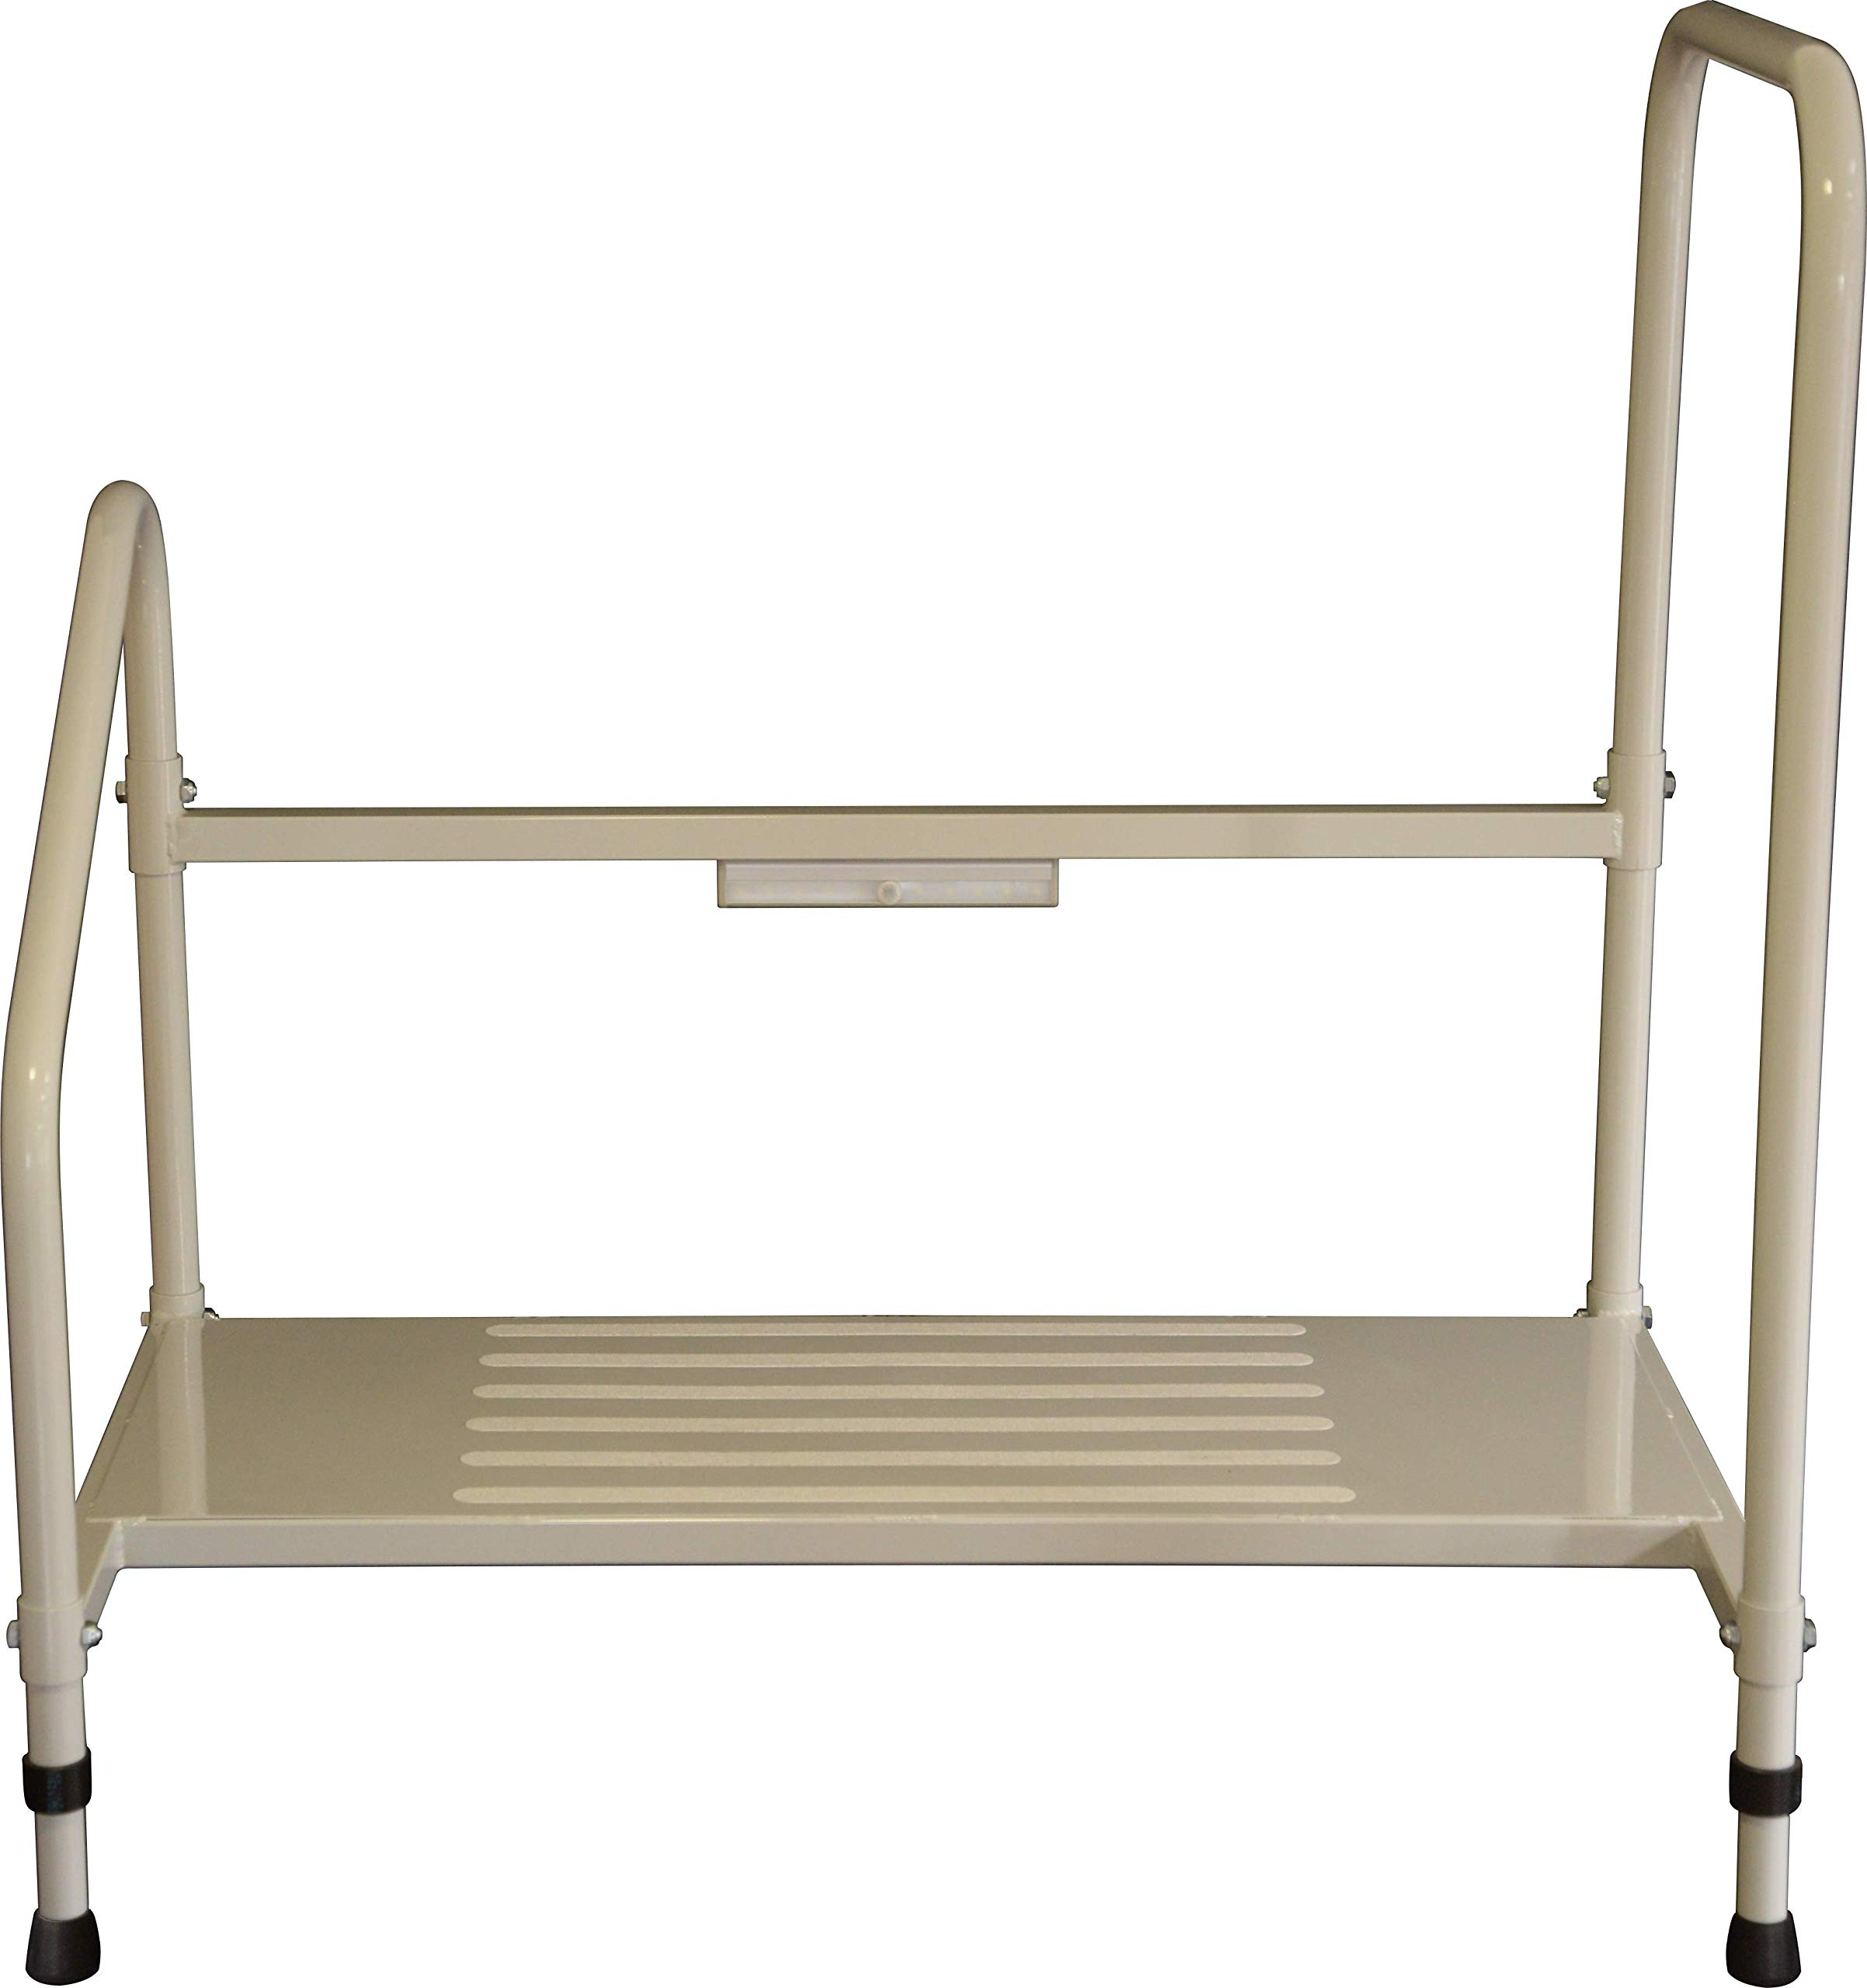 Step2bed Bed Rails For Elderly With Adjustable Height Bed